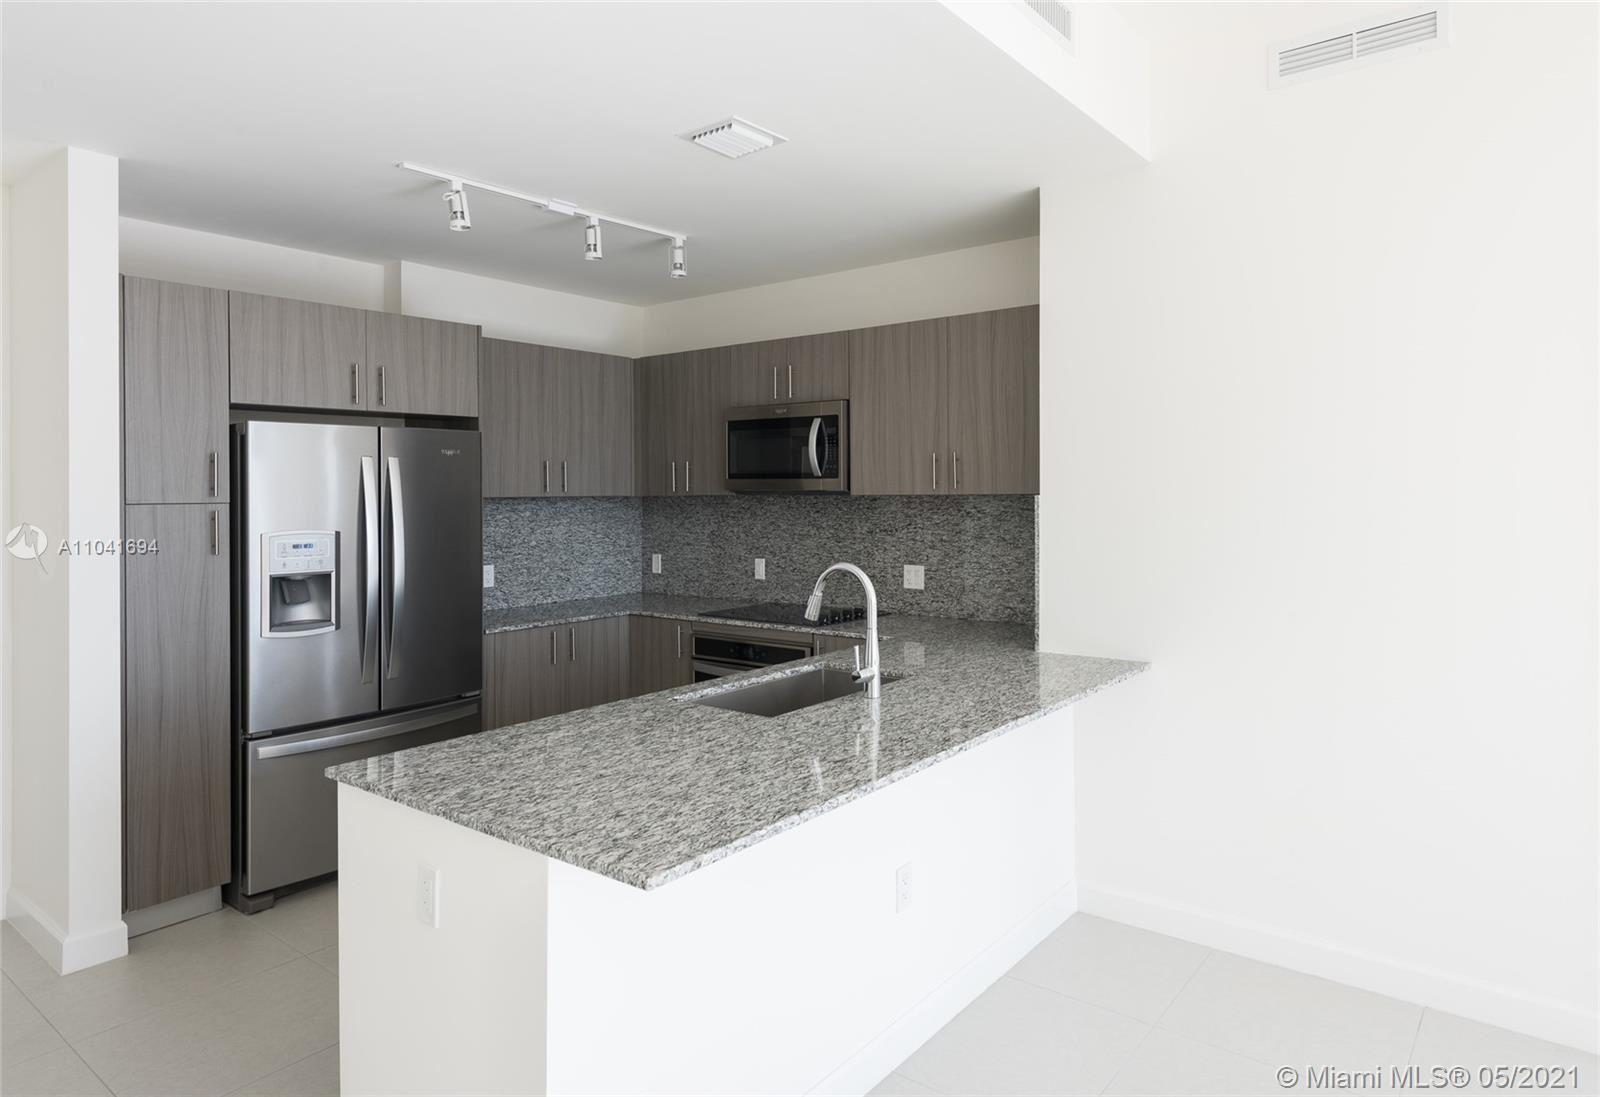 5350 NW 84th Ave #2013, Doral, FL 33166 - #: A11041694